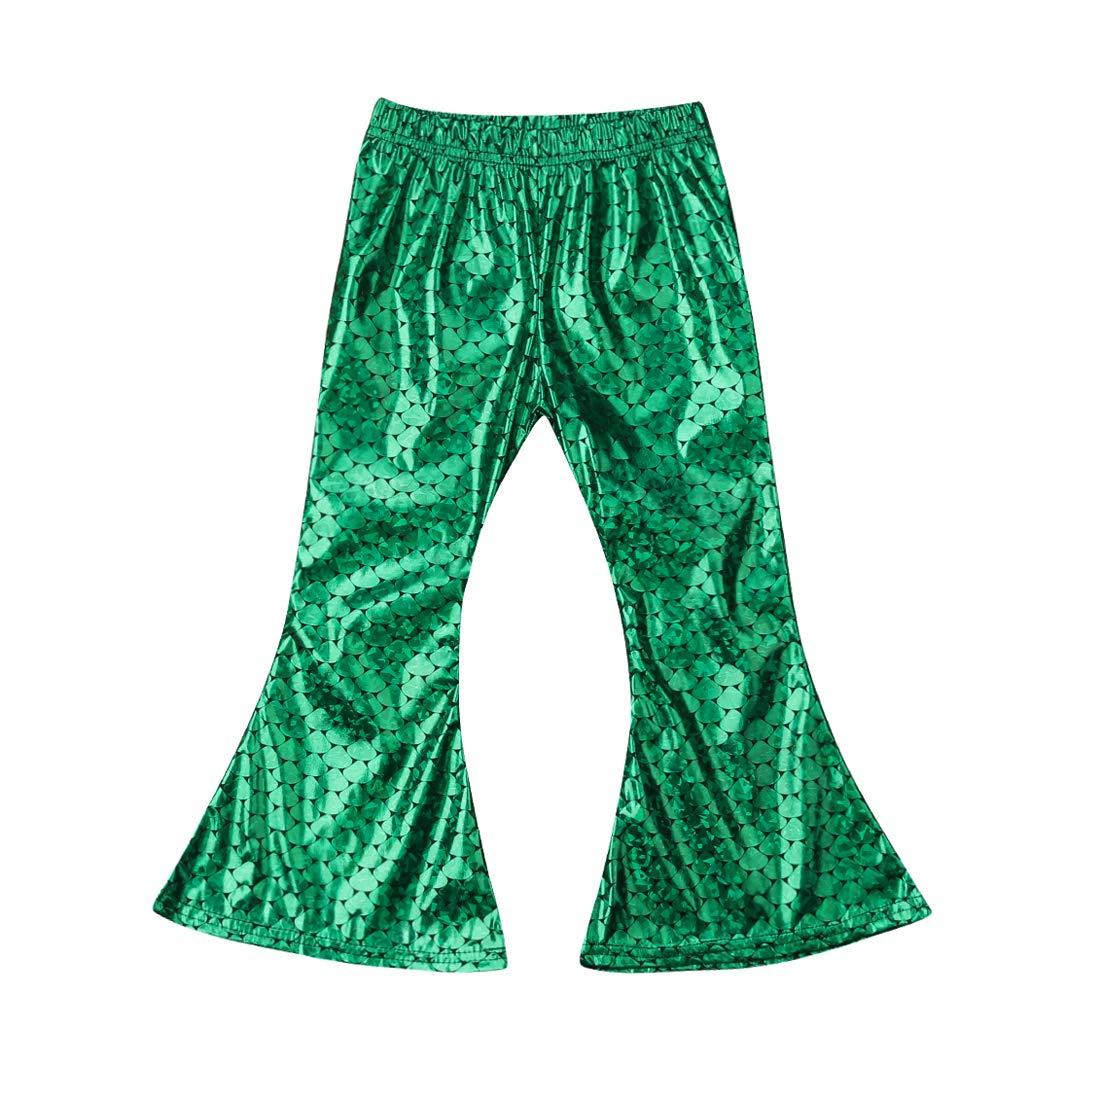 f97d58d3181a1 Galleon - Kids Baby Girls Mermaid Fish Stretch Long Flared Leggings Bell  Bottom Pants (4-5 Years, Green)